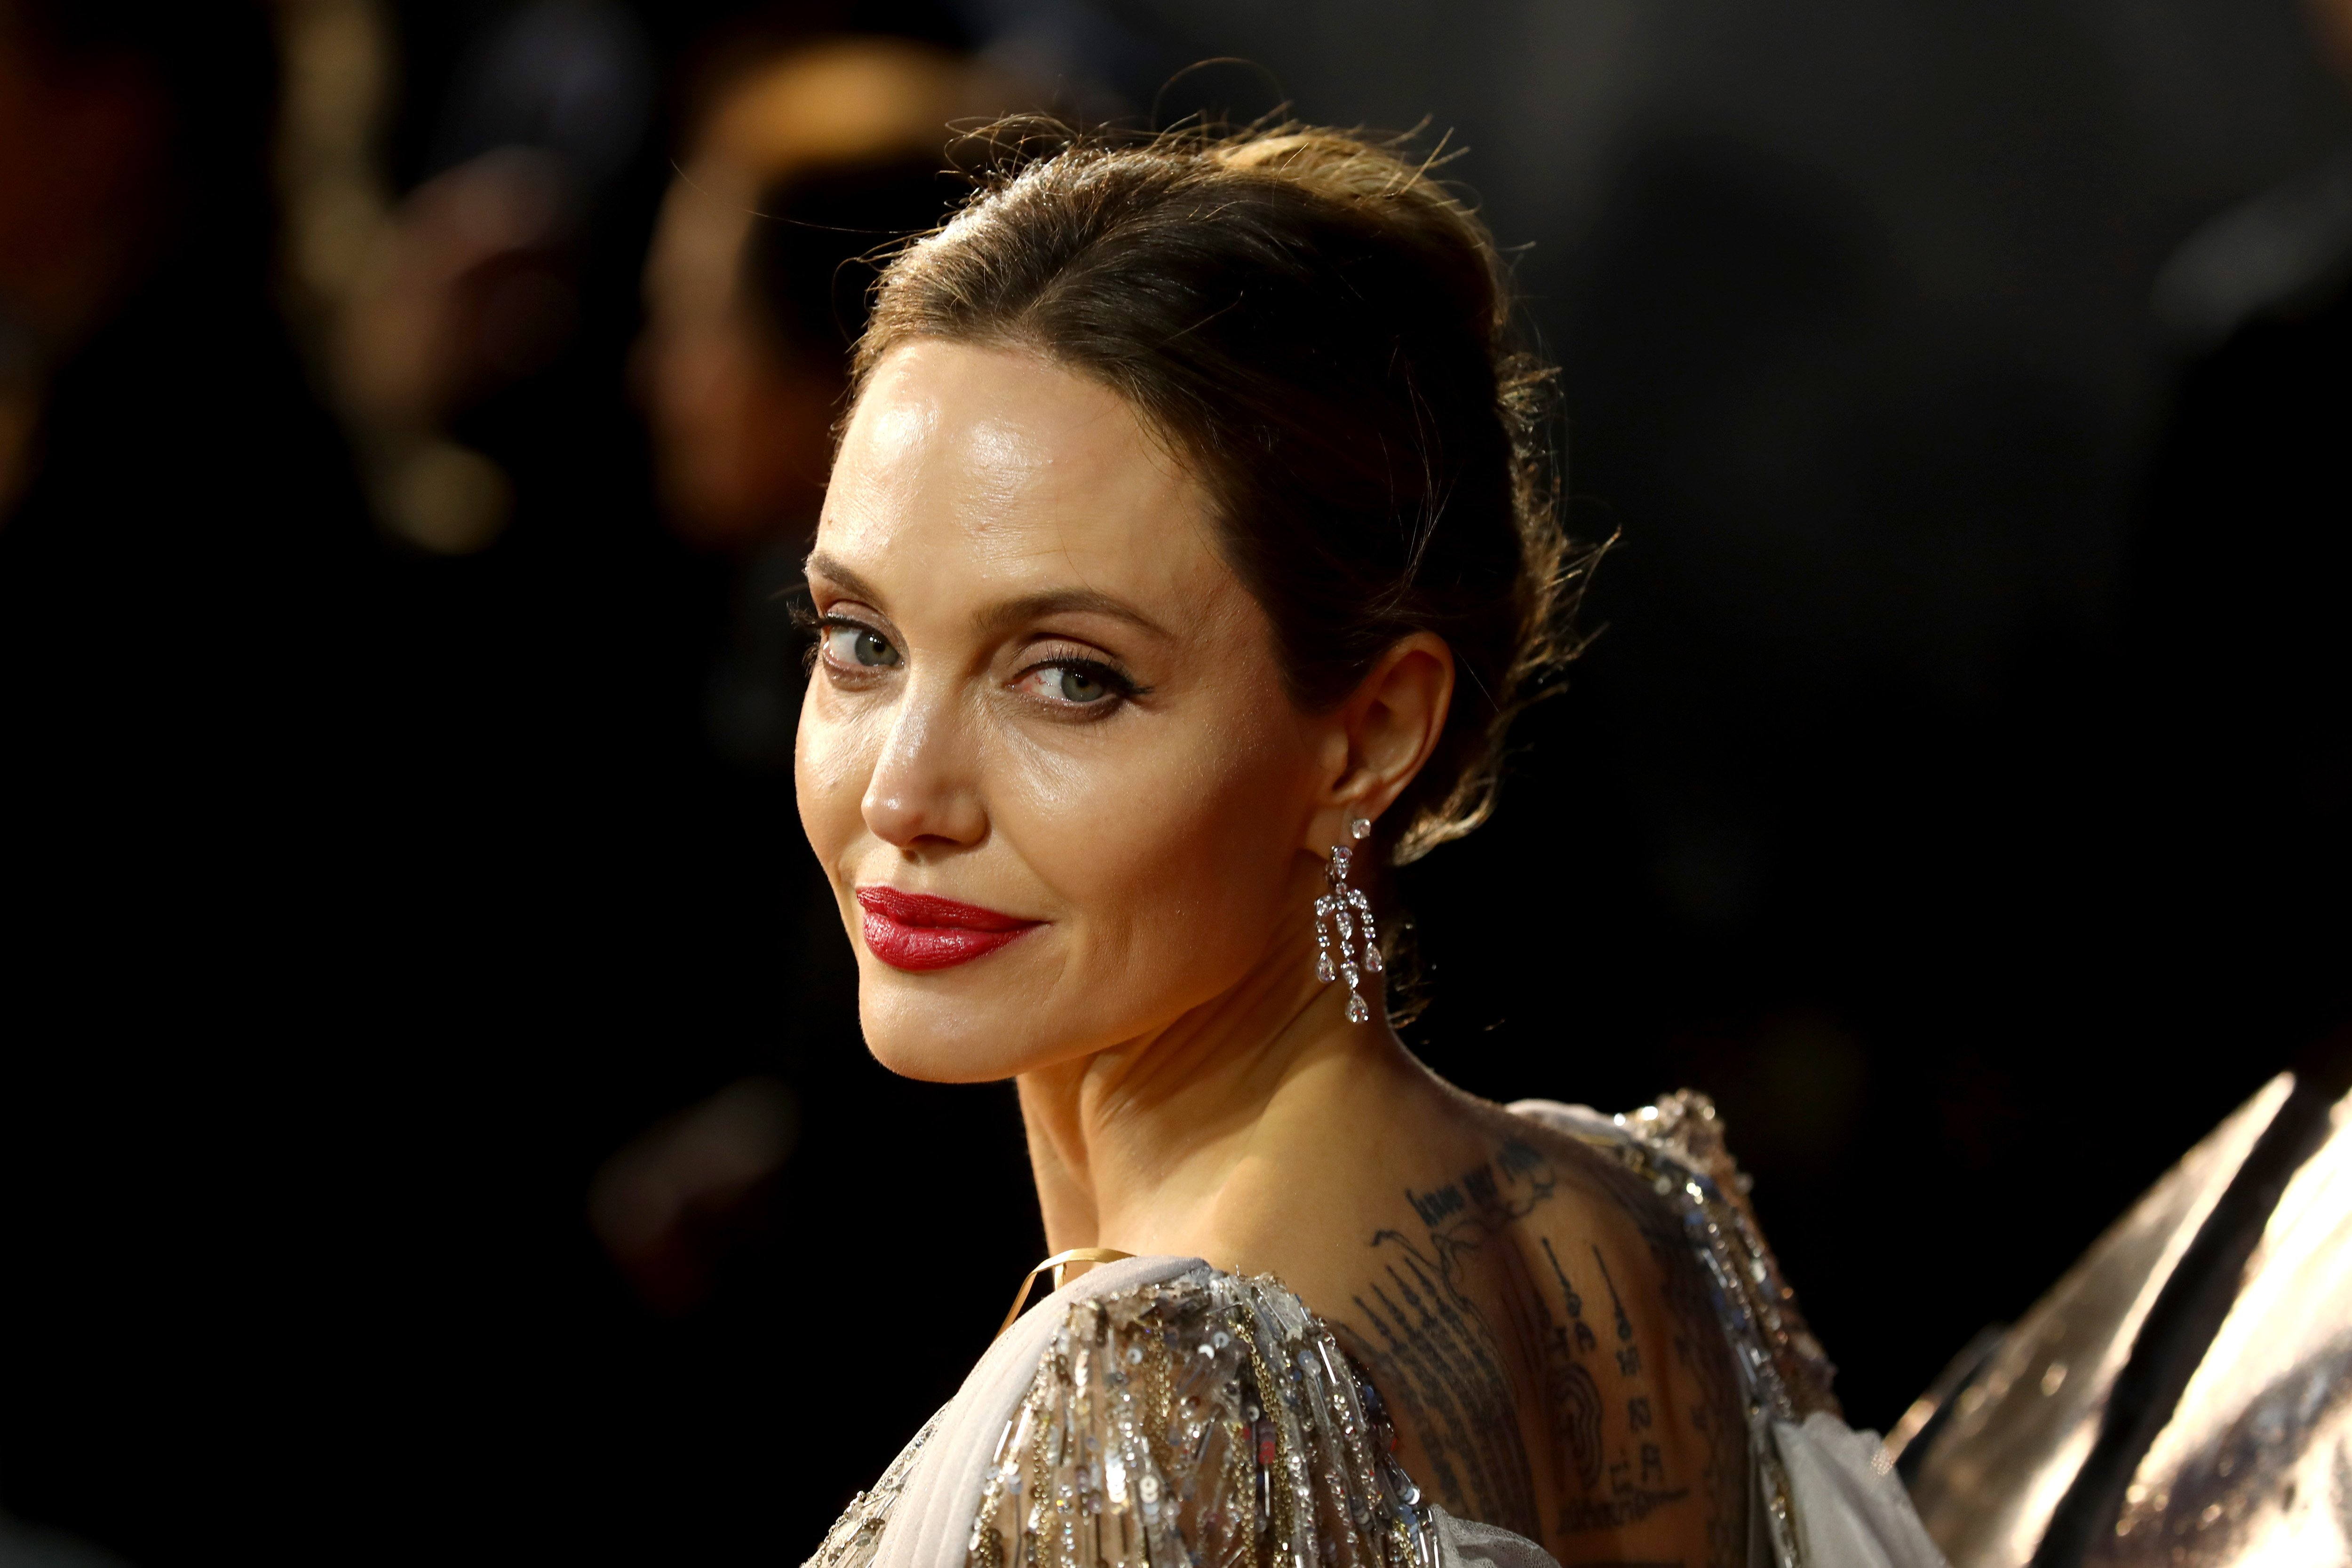 """Angelina Jolie at the European premiere of """"Maleficent: Mistress of Evil"""" at Odeon IMAX Waterloo on October 9, 2019. 